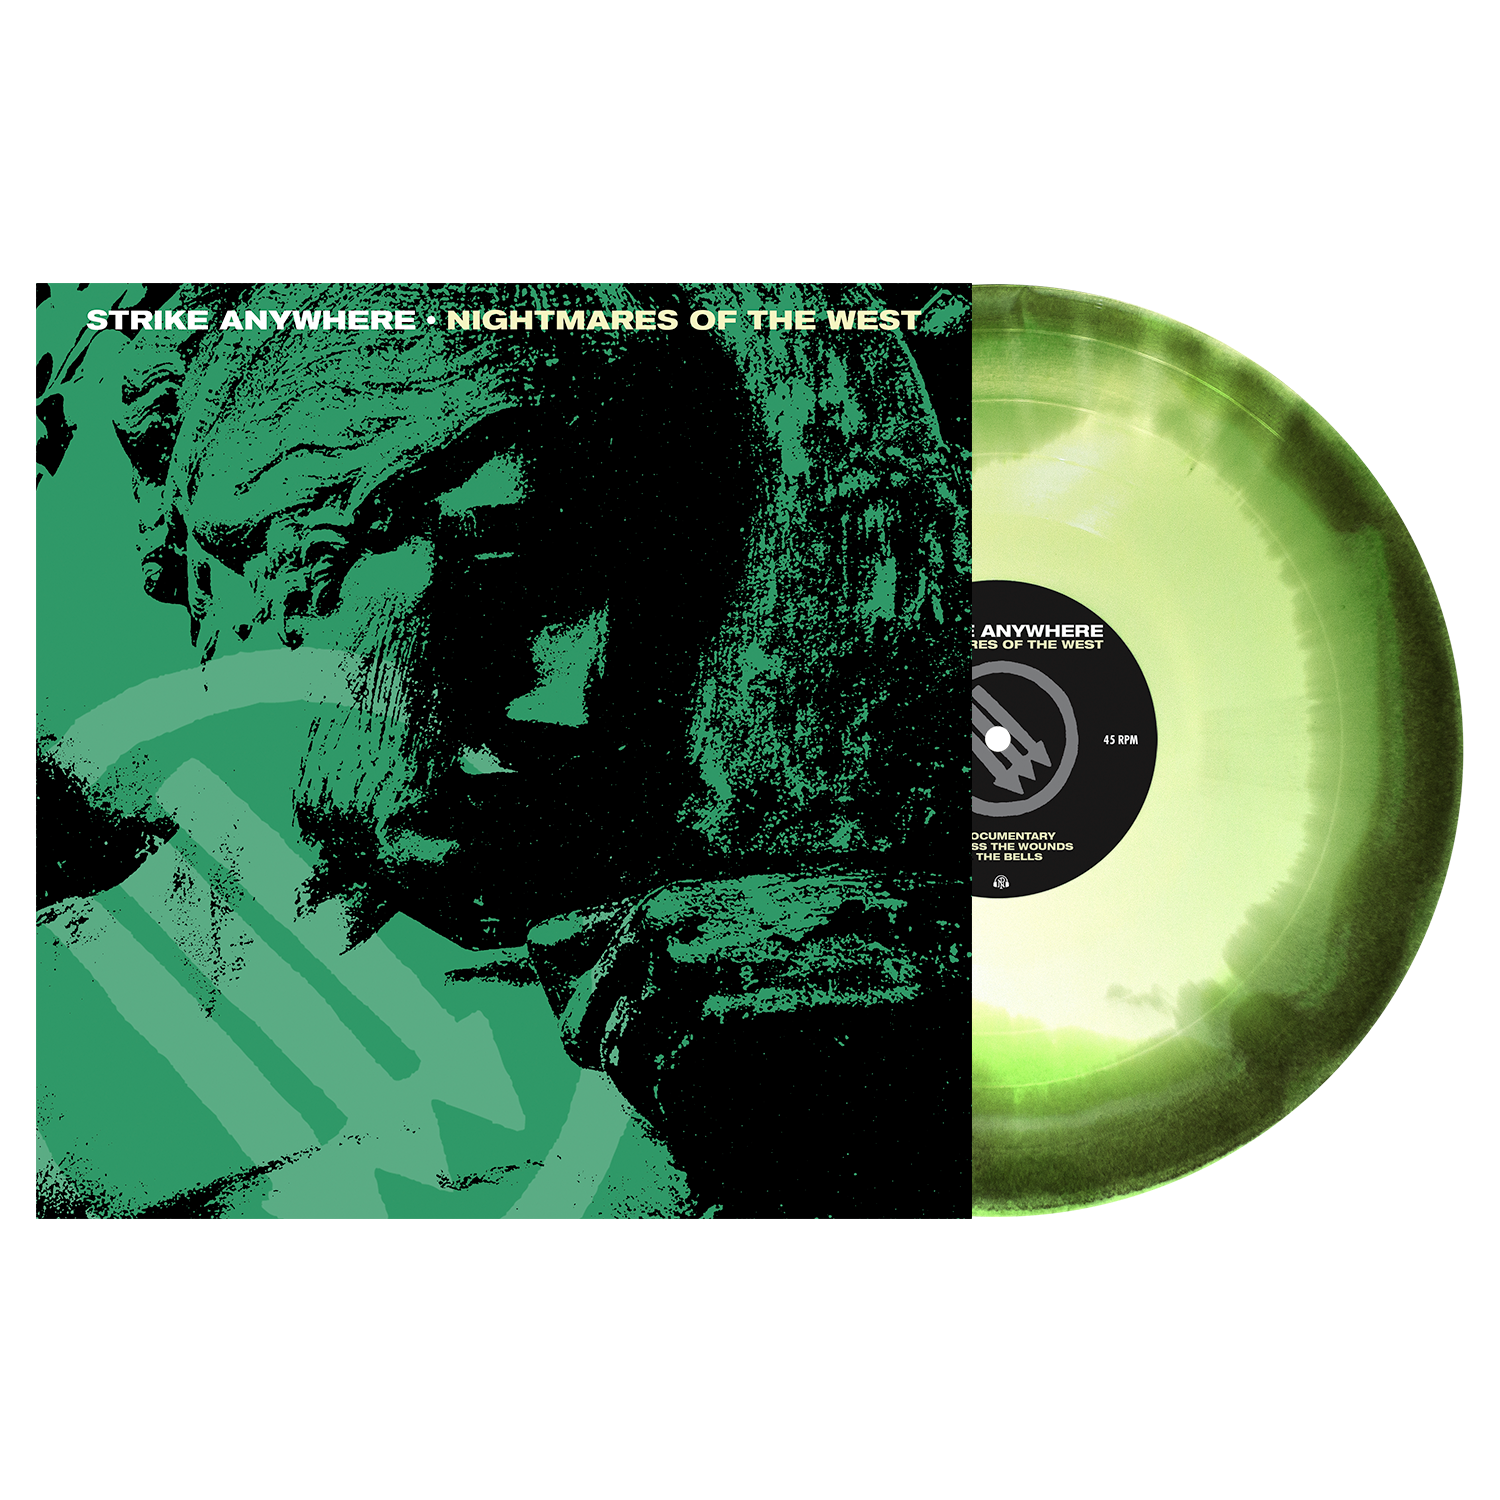 Strike Anywhere 'Nightmares of the West' LP (PN Webstore Exclusive 2 - Doublemint, Swamp Green, White Aside/Bside)